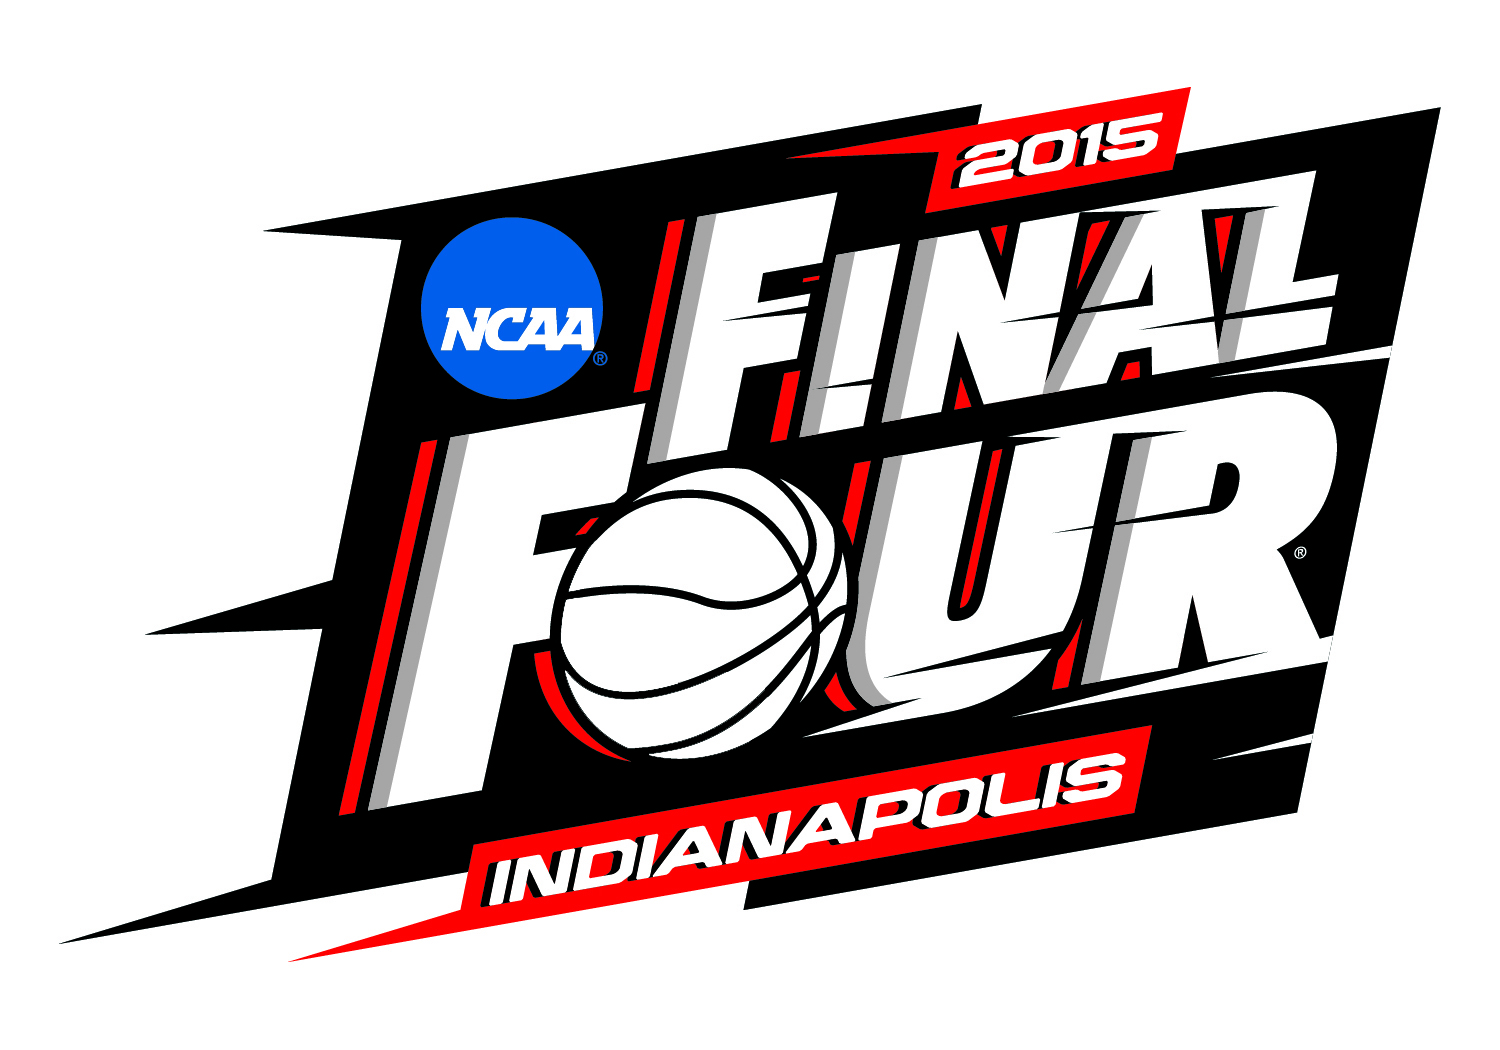 2015 Final Four Logo Unveiled in Indianapolis | Around Indy